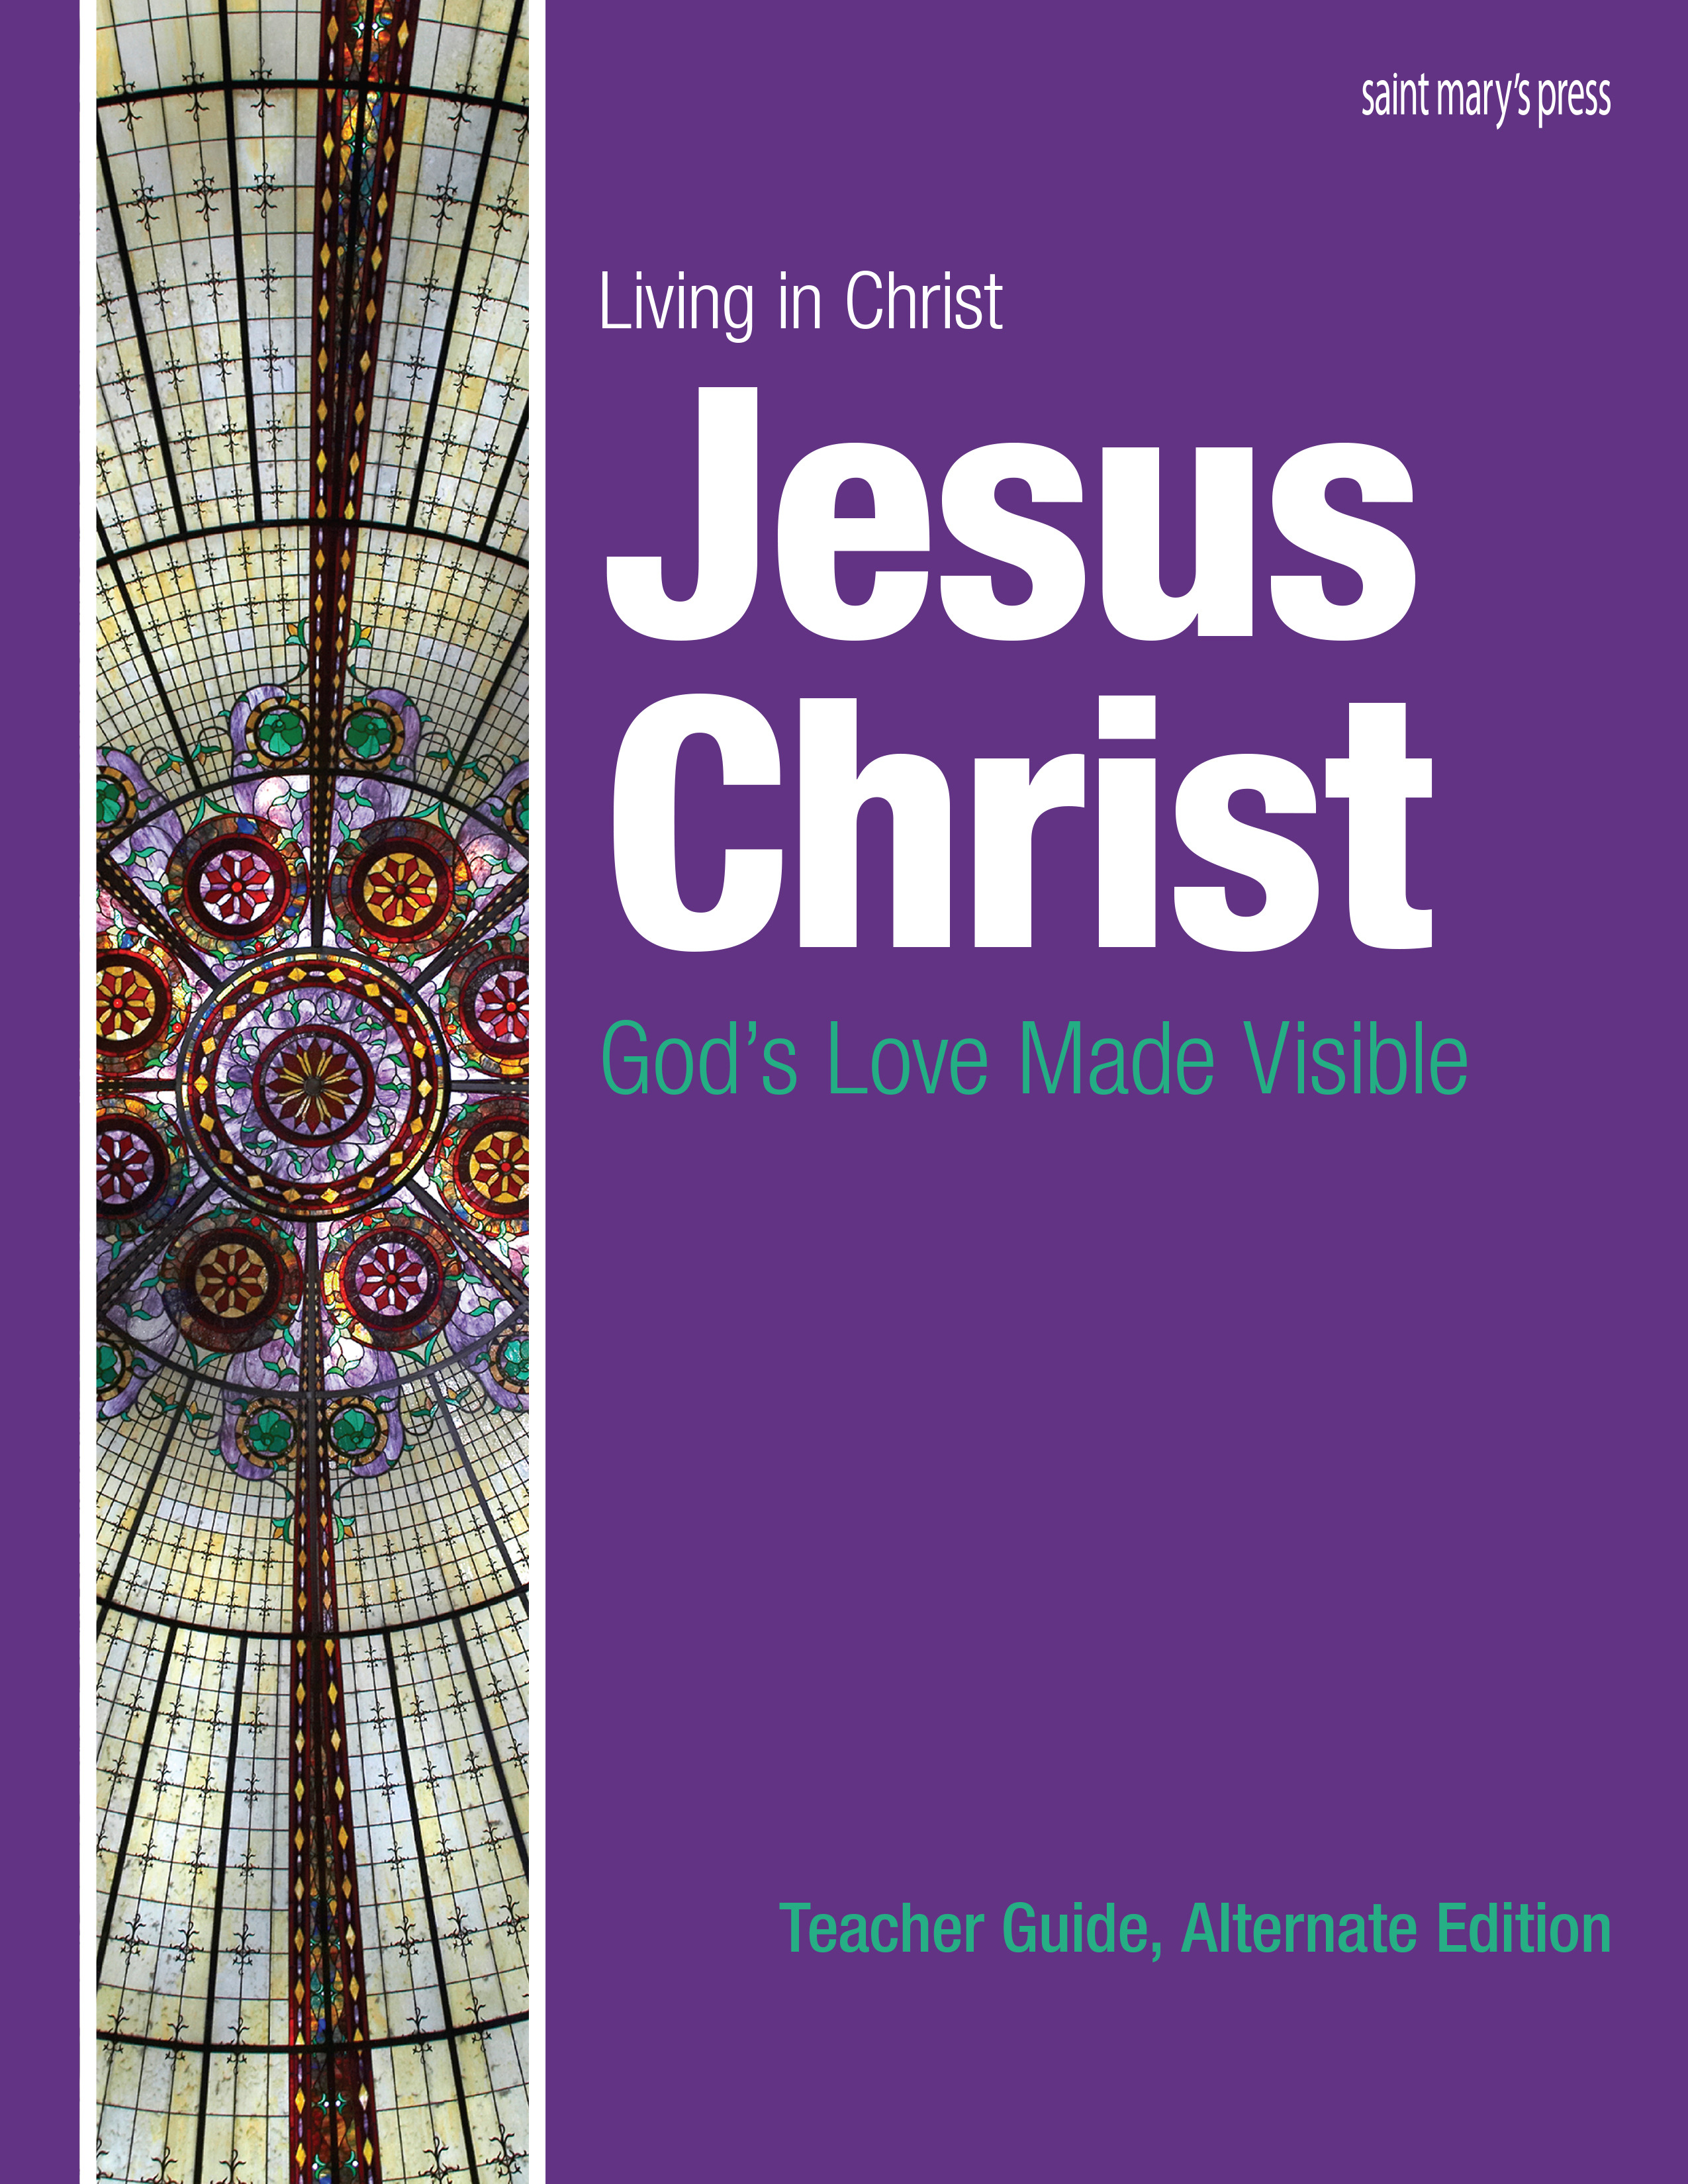 Jesus Christ: God's Love Made Visible, Teacher Guide ‒ Alternate Edition